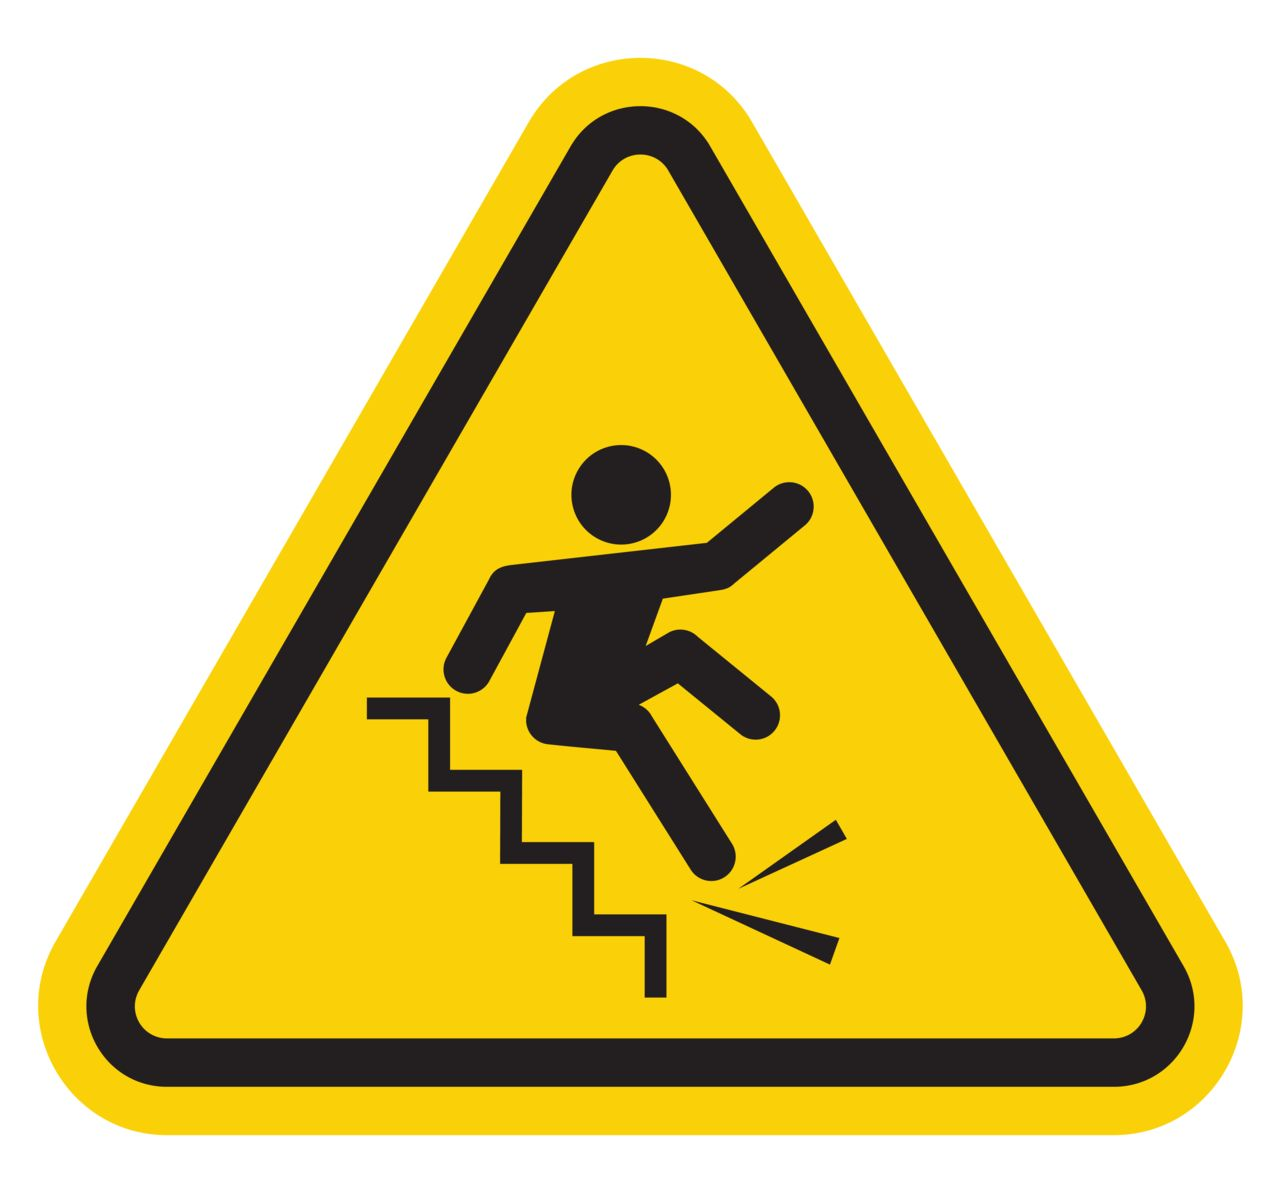 Warning Sign Of Someone Falling Down The Stairs